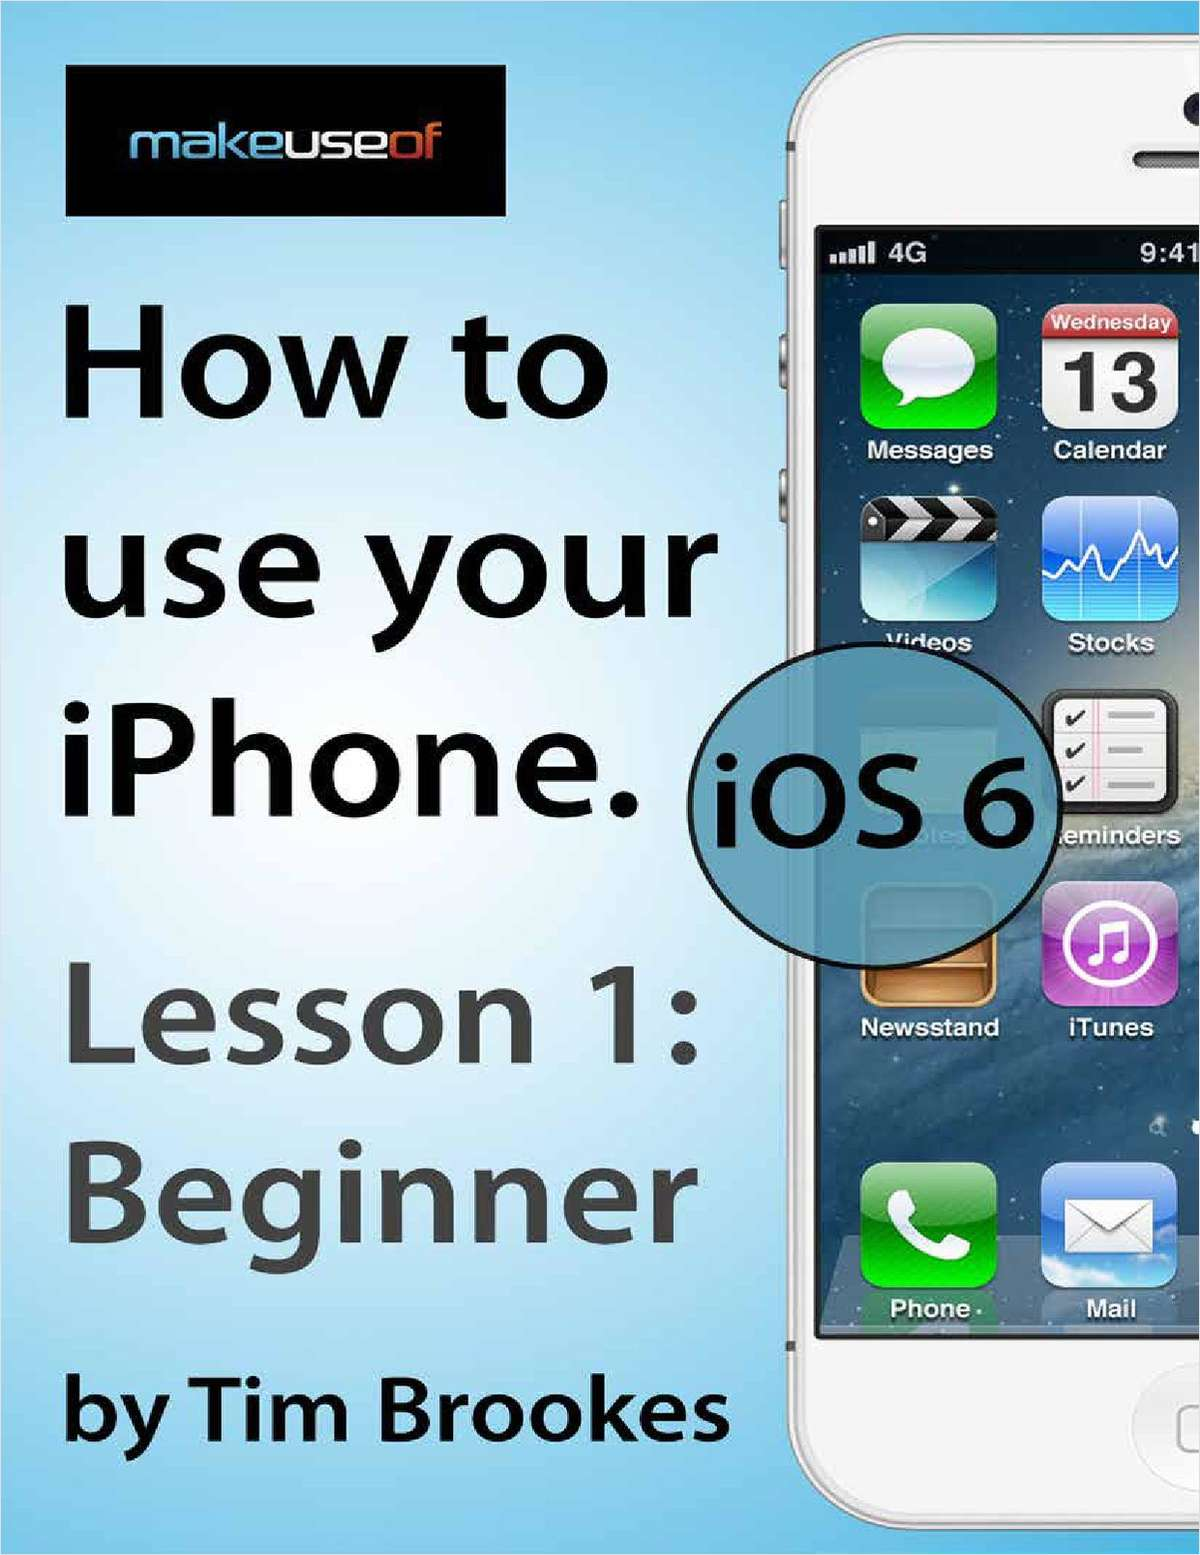 How To Use Your iPhone iOS6: Lesson 1 Beginner